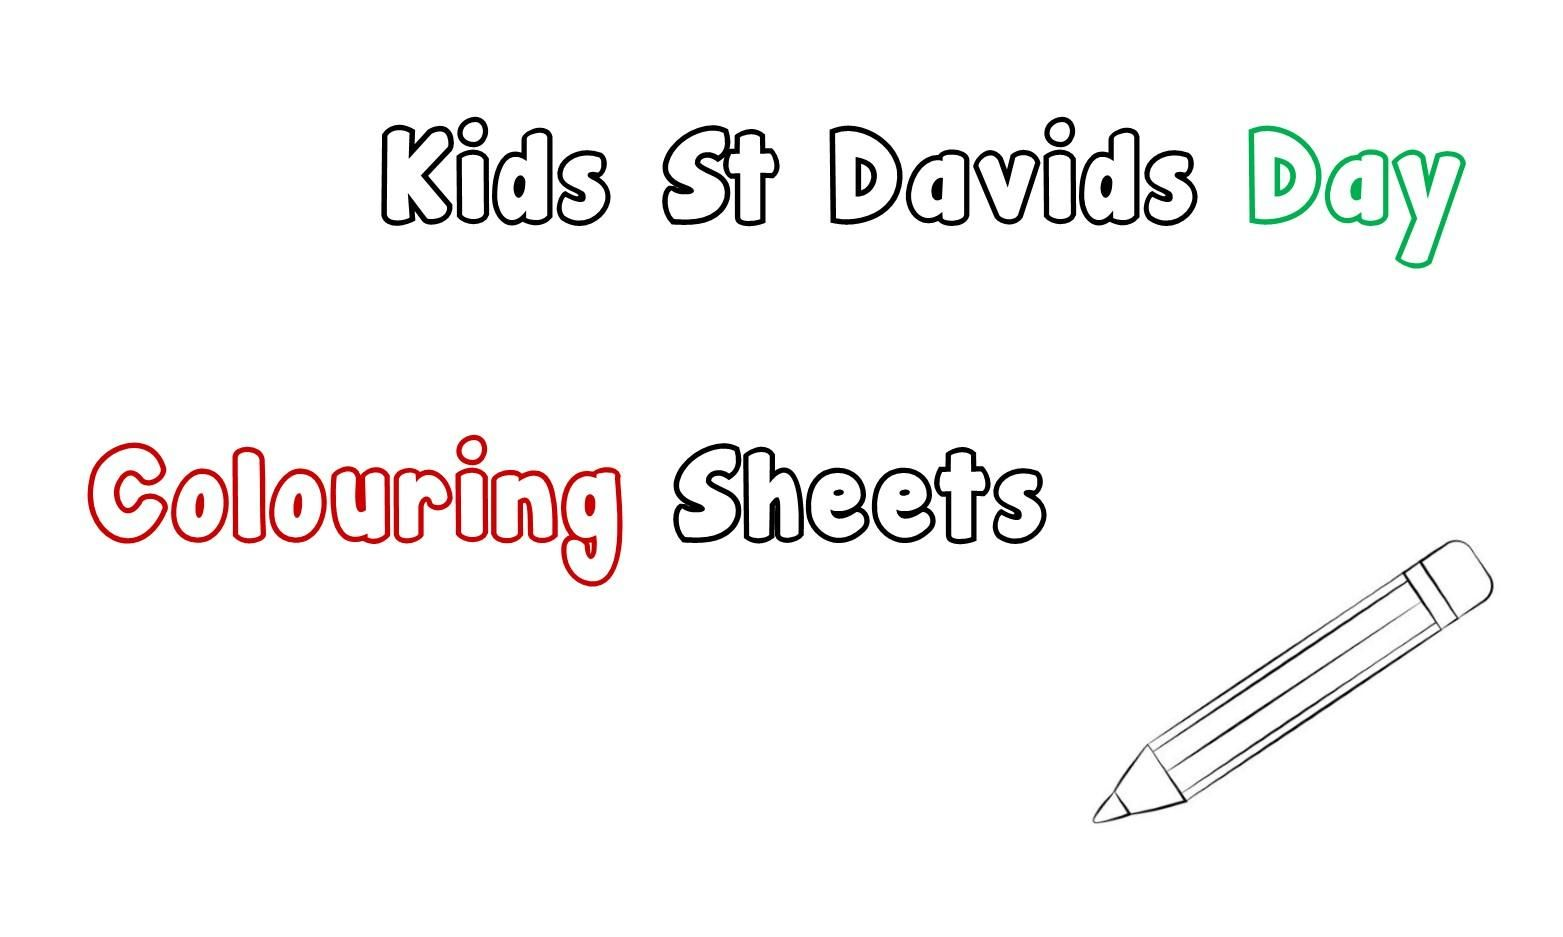 Printable St David's Day Colouring Sheets for the Kids